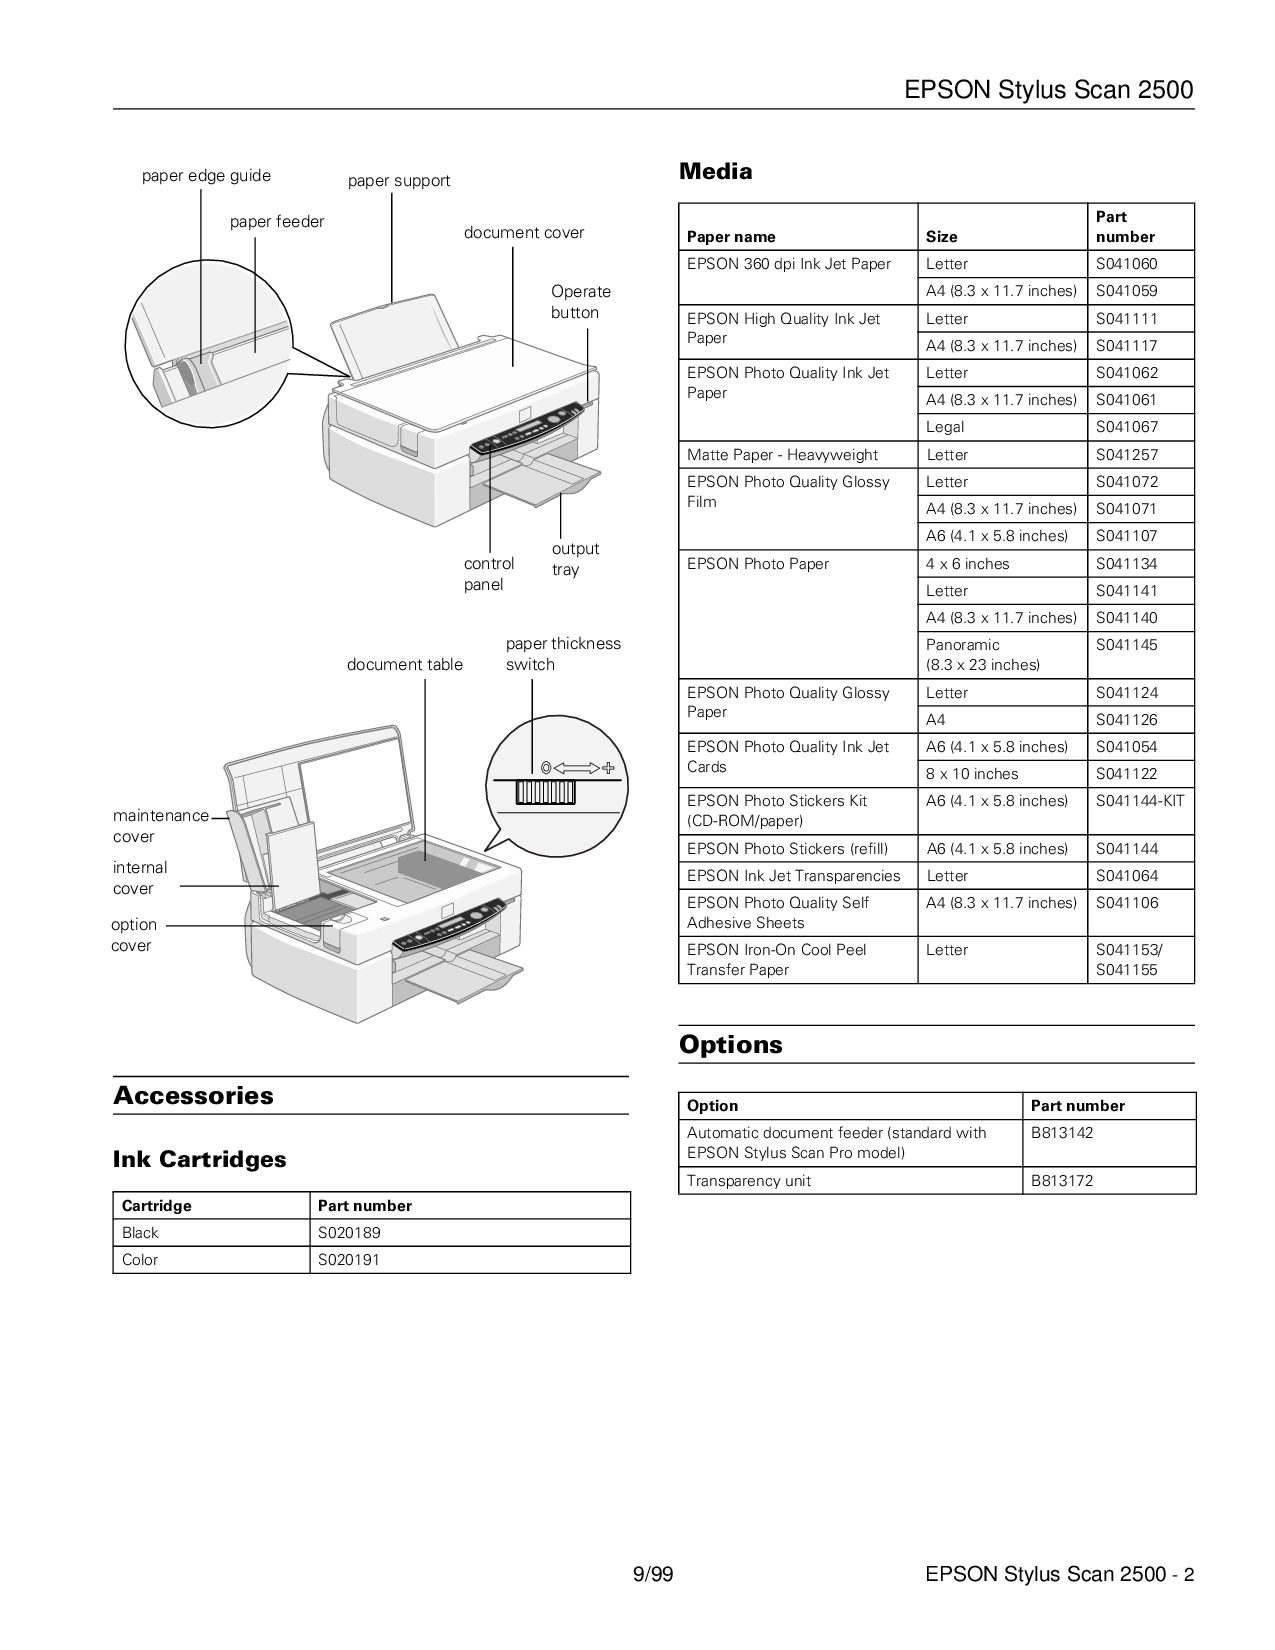 Epson All in One Printer manuals